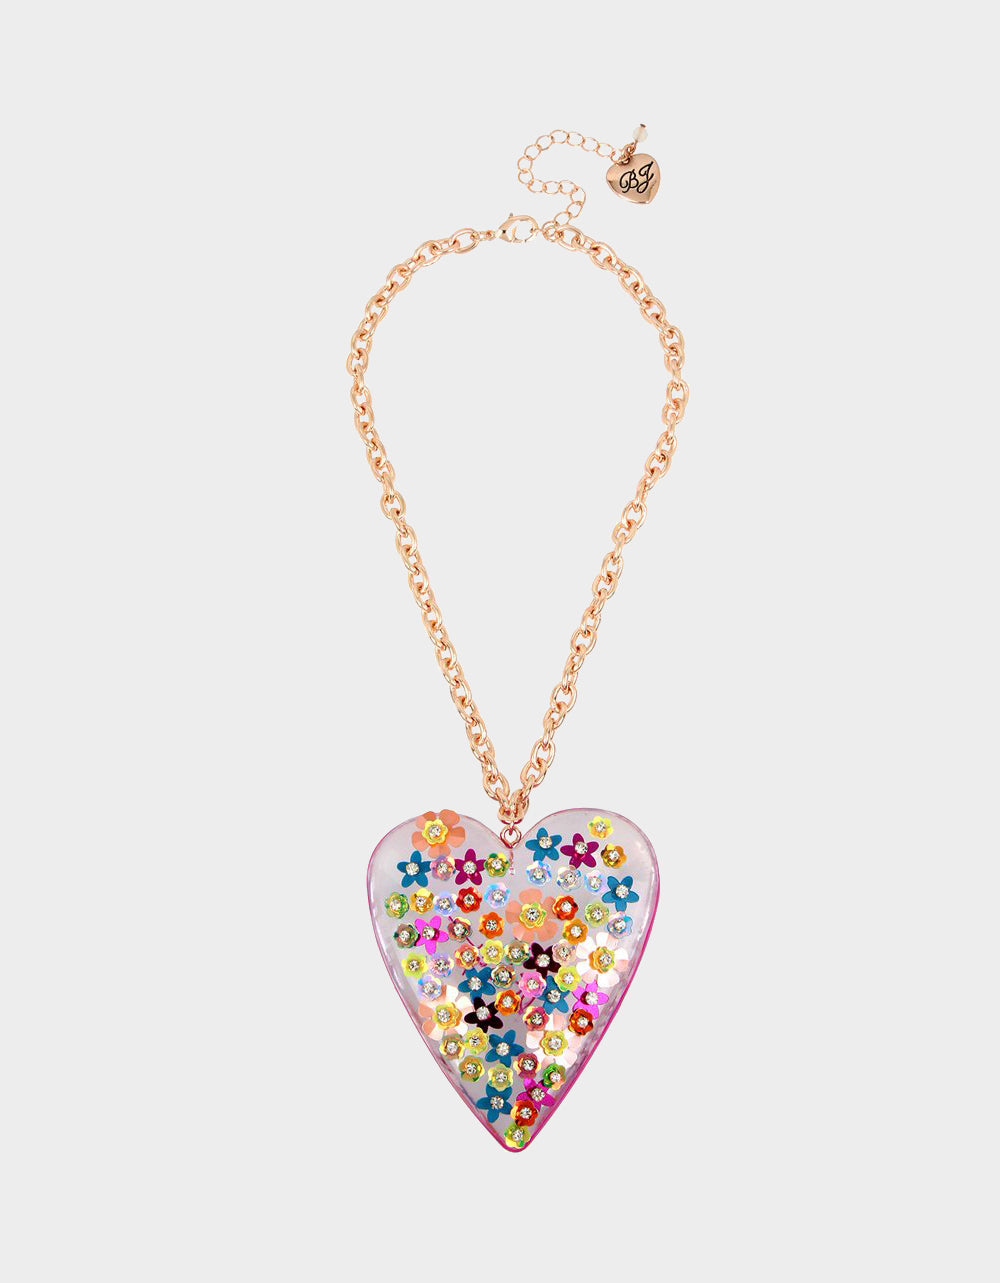 BEACH PARTY STATEMENT HEART NECKLACE MULTI - JEWELRY - Betsey Johnson